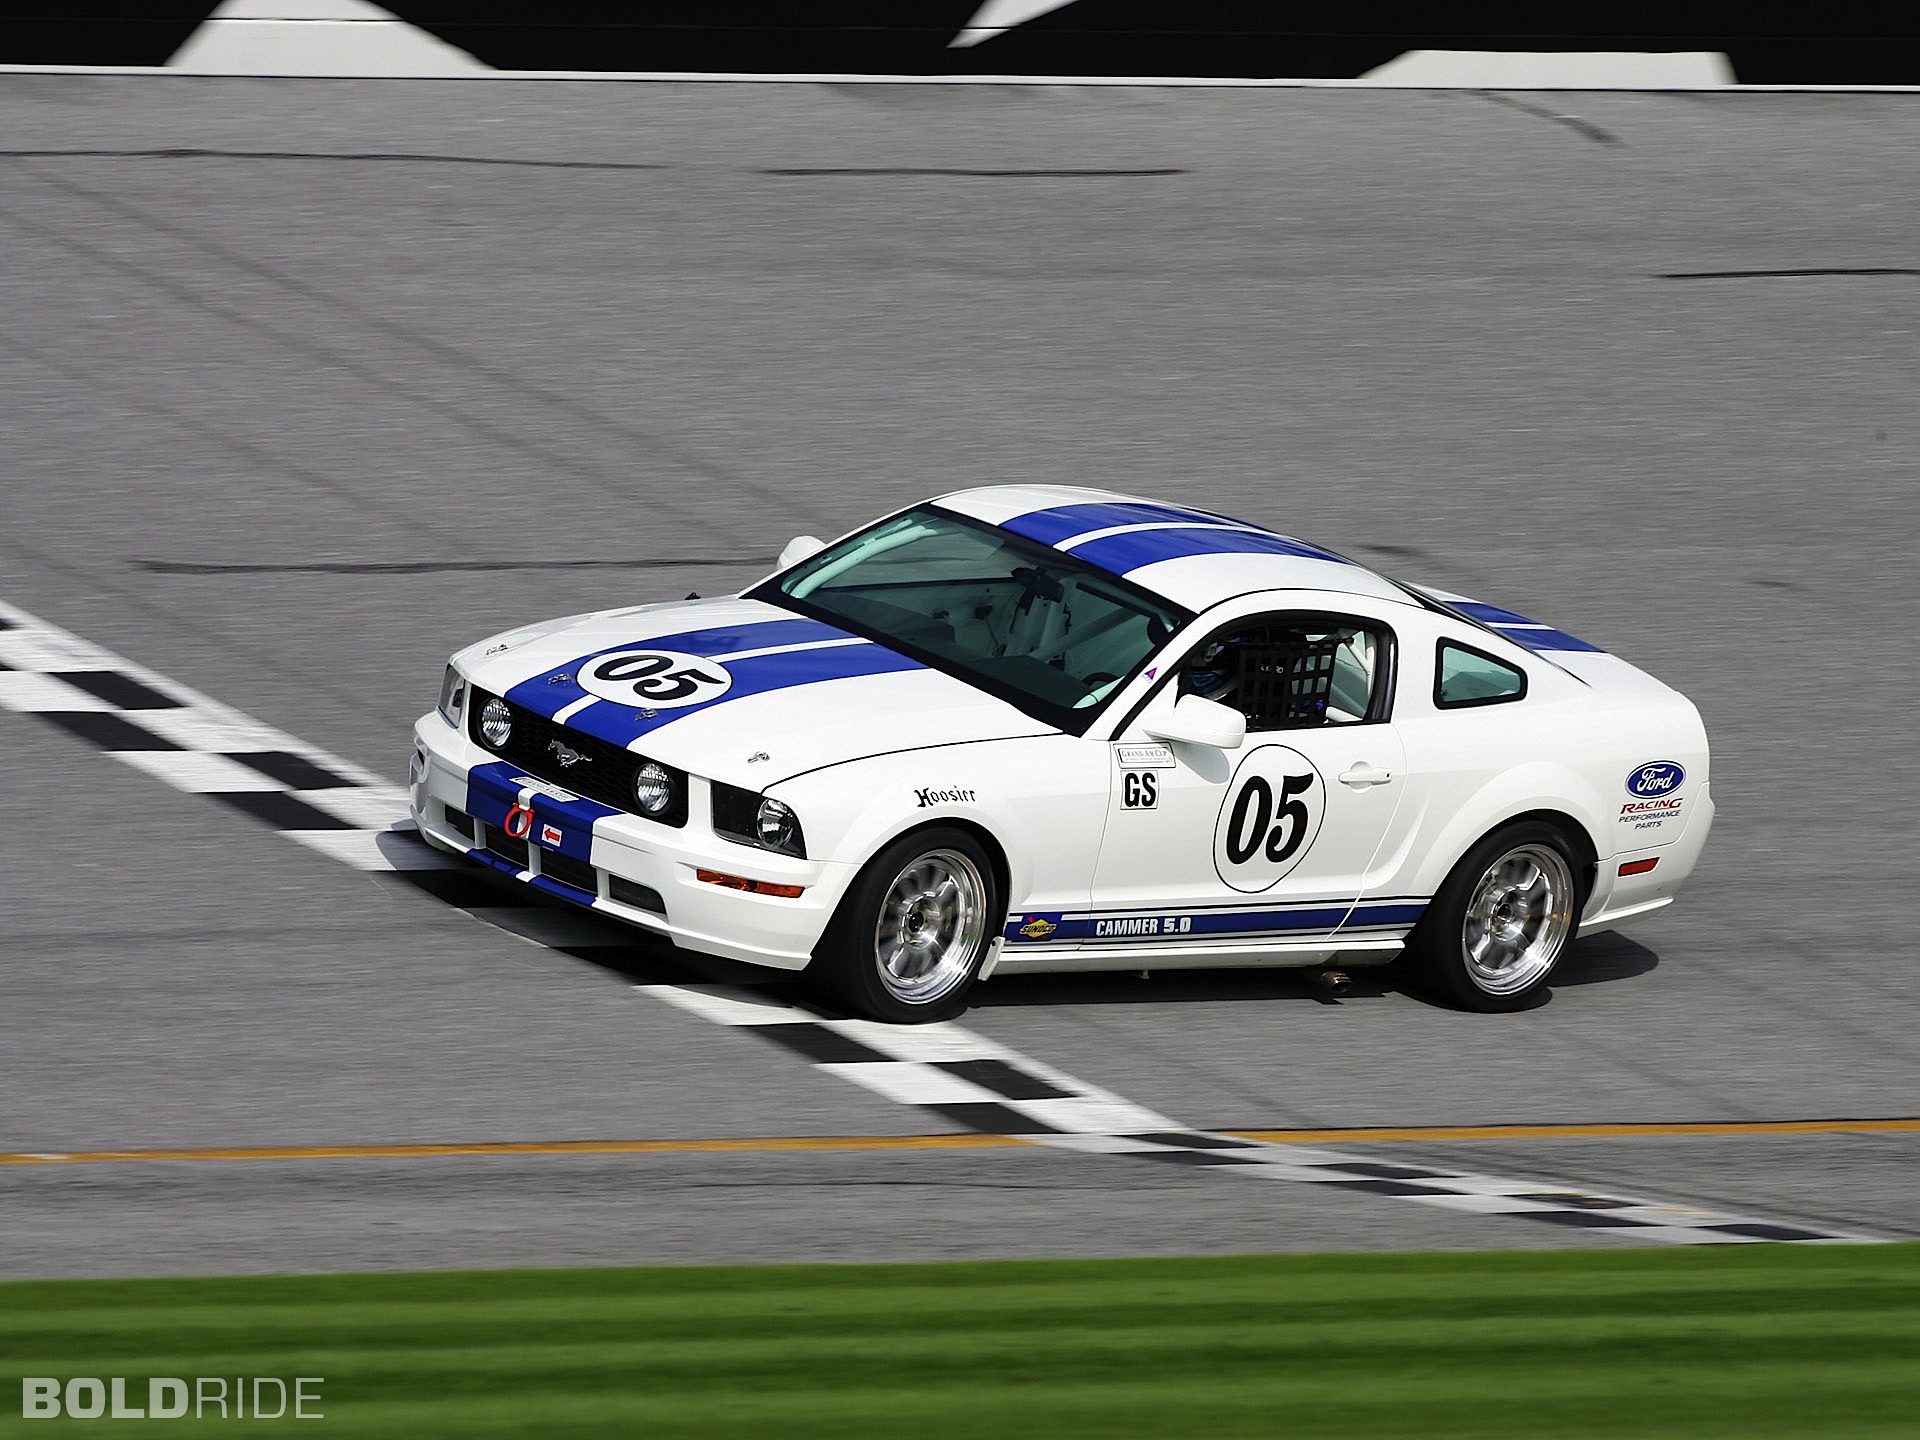 2019 Ford Mustang Racecar Prototype photo - 4